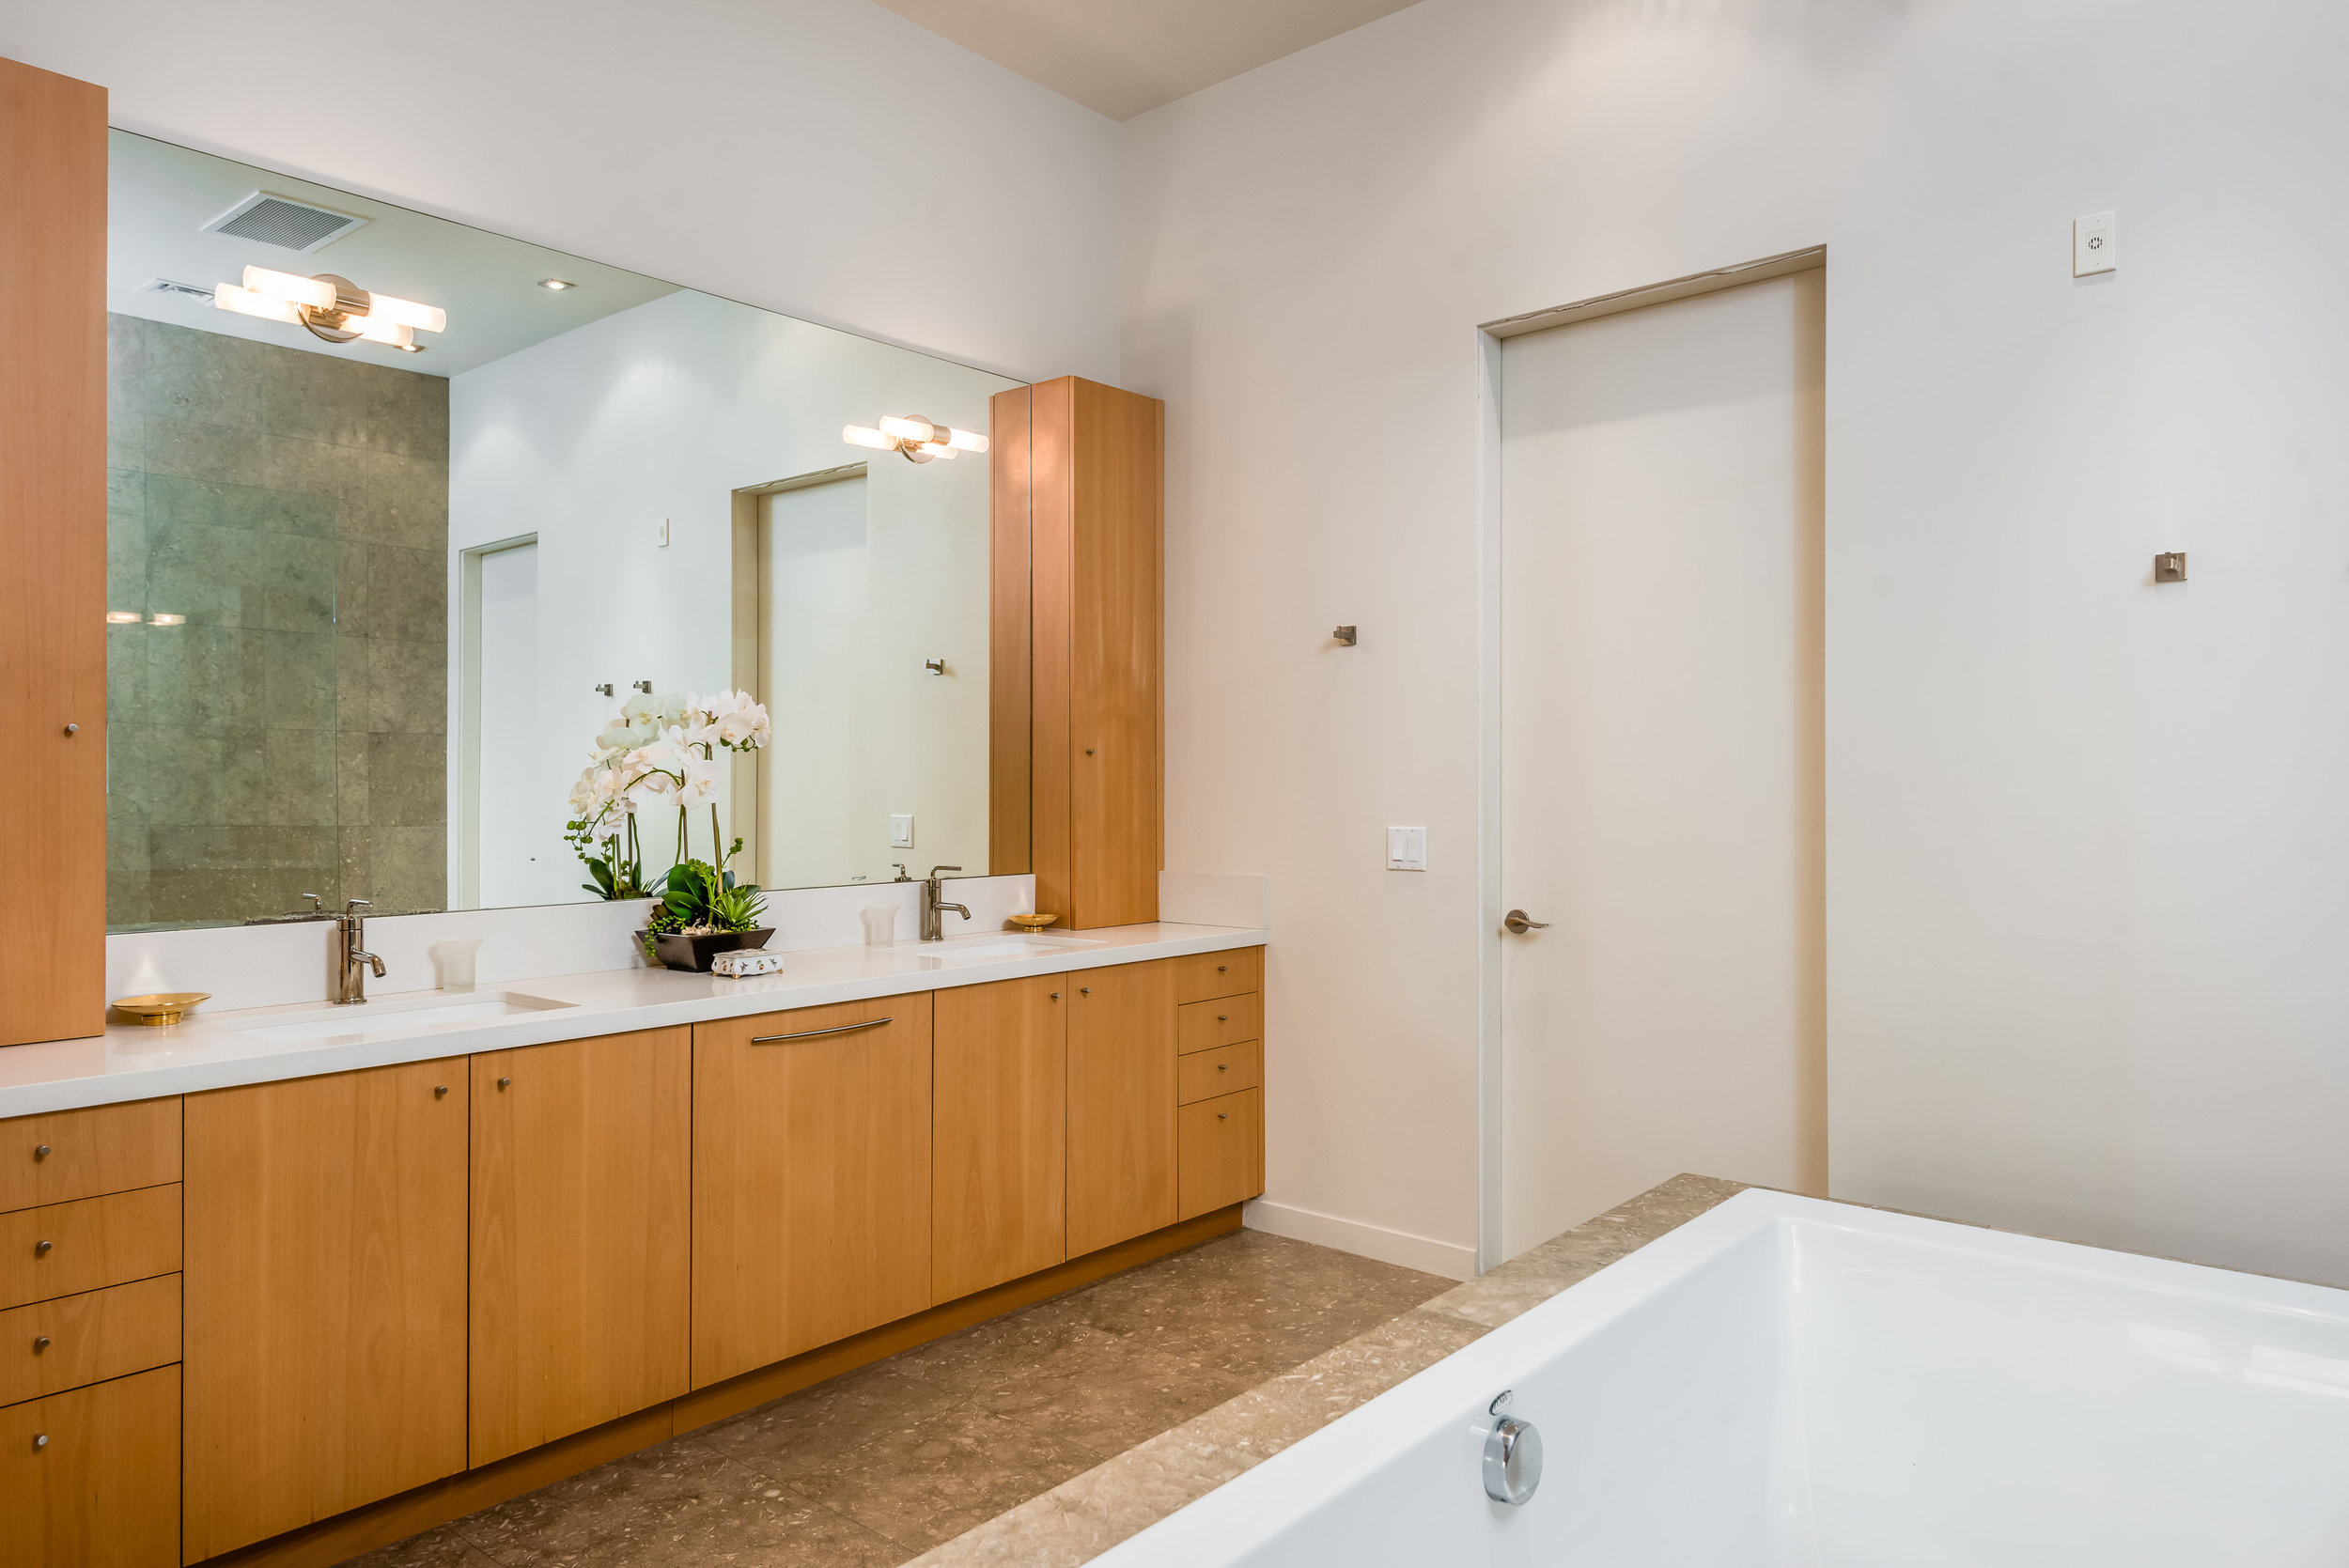 010_10-Master Bathroom.jpg